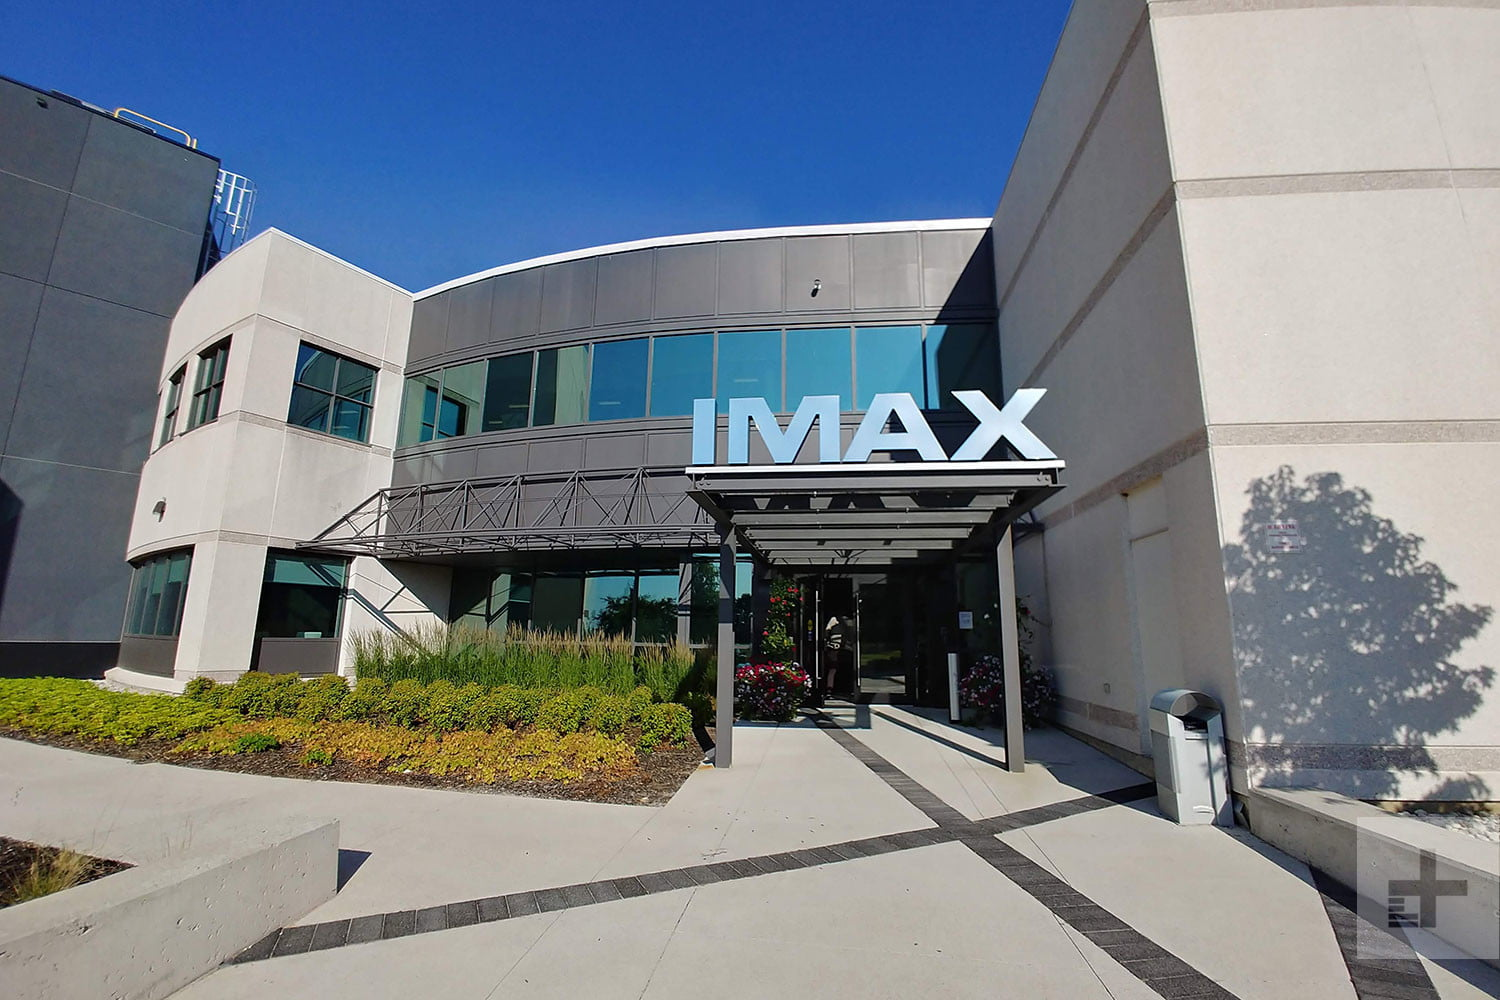 imax theater outside